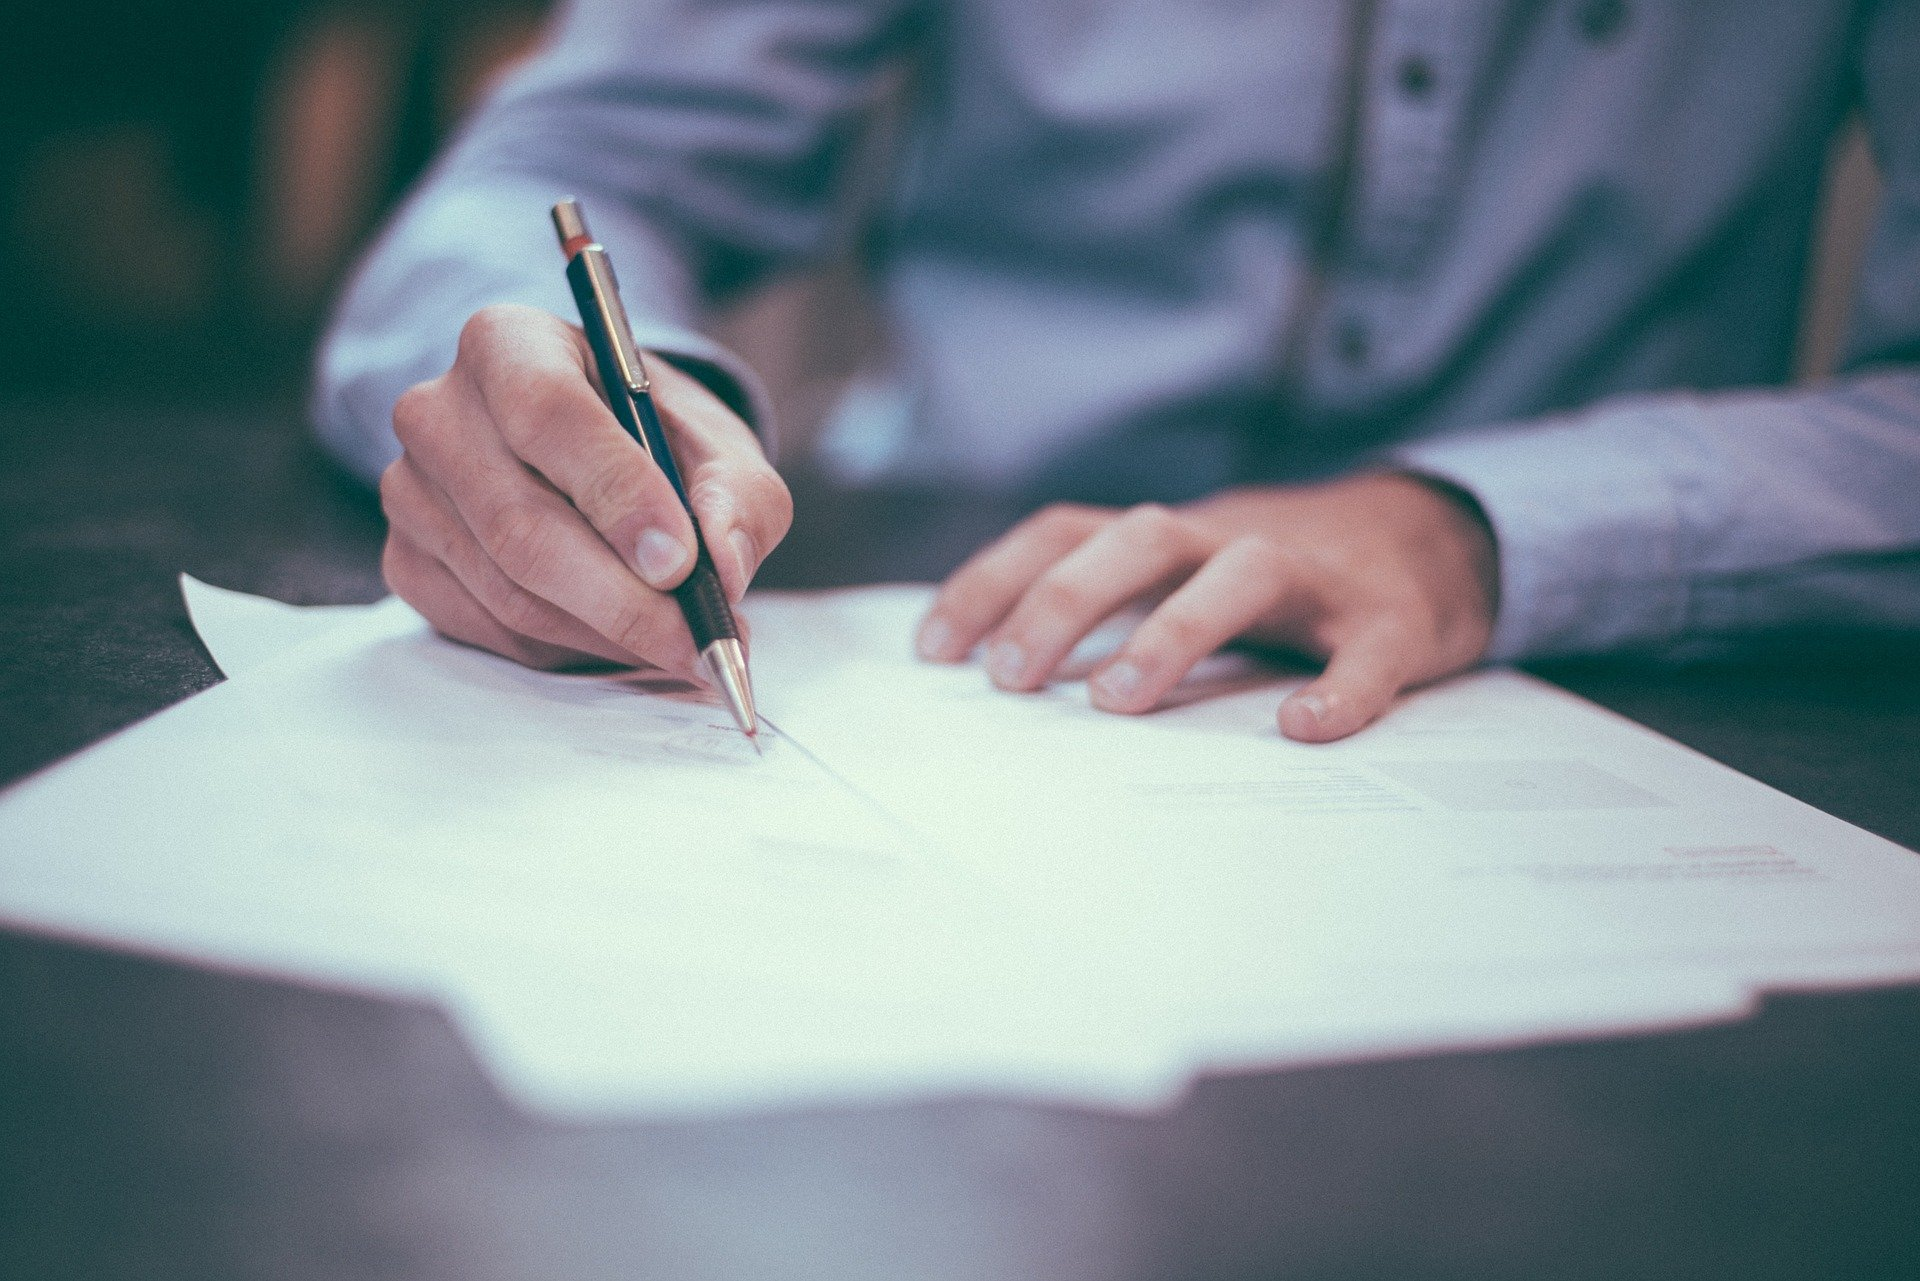 Business Contract Disputes: What Causes Them And How Can You Solve Them?